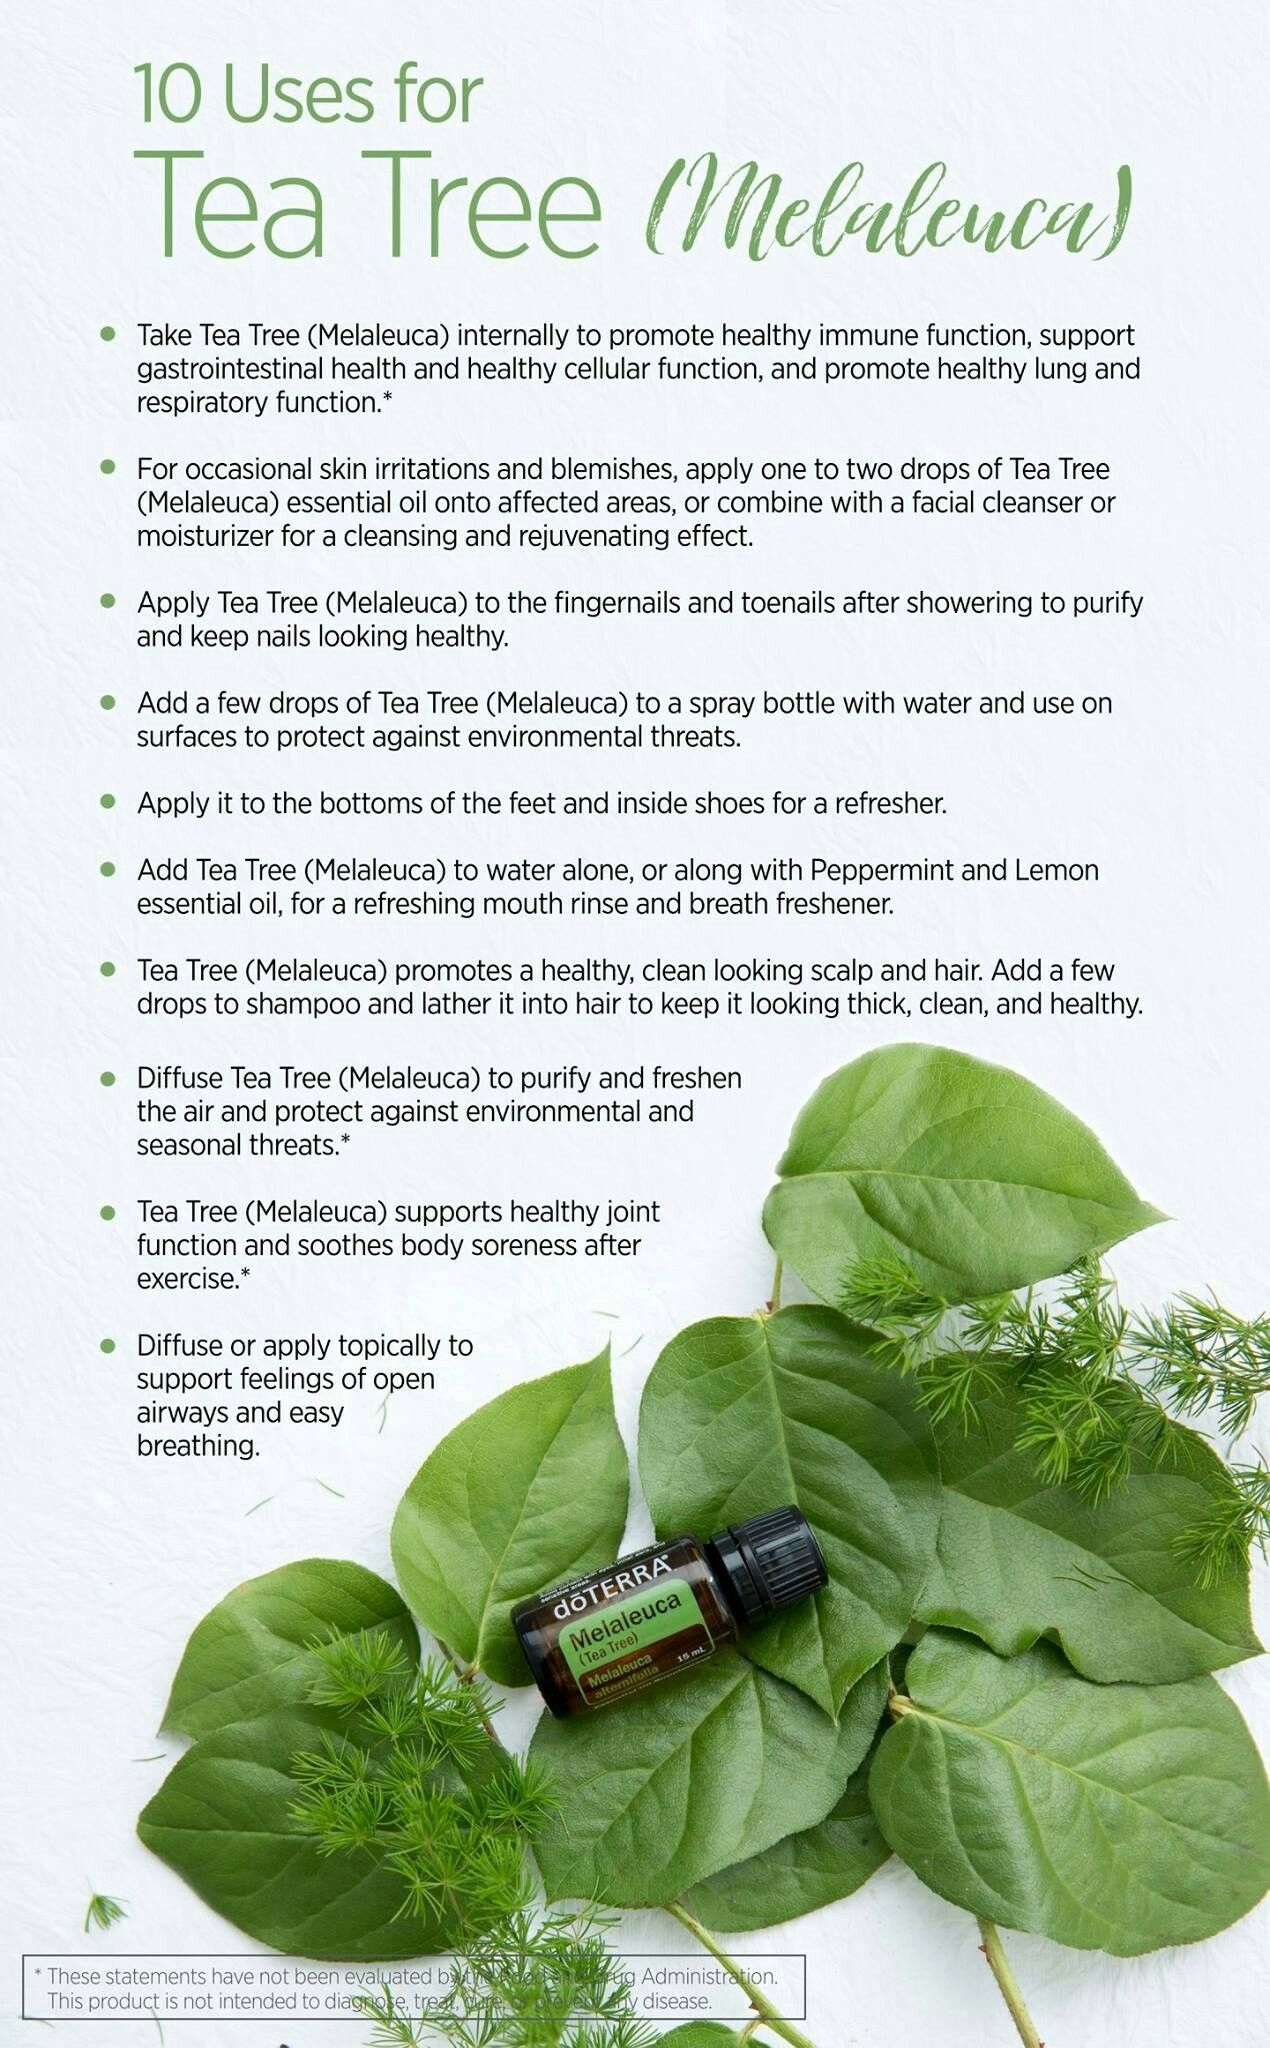 Pin by Edith Santiago on Essential Oils | Pinterest | Oil ...